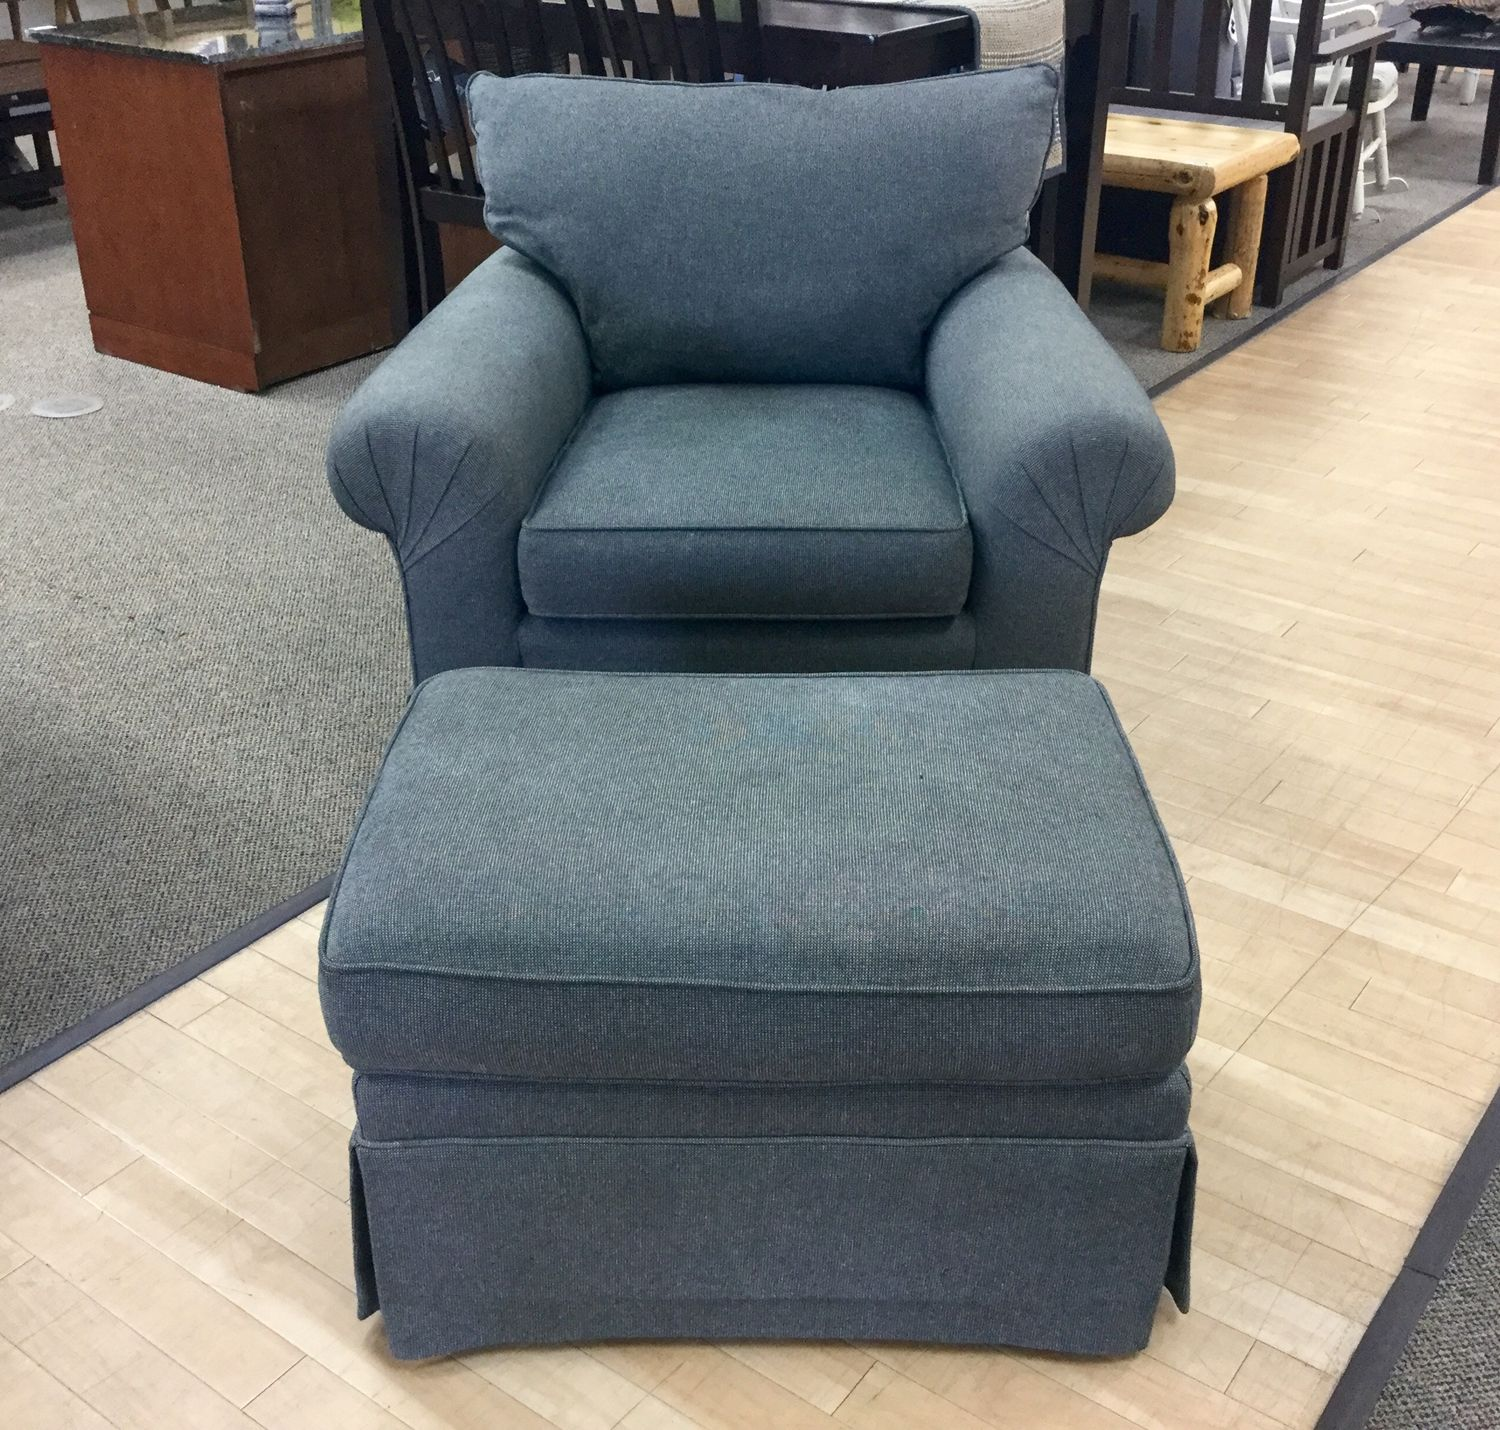 Just In The Door Pay Only 96 For This Comfy Armchair Ottoman